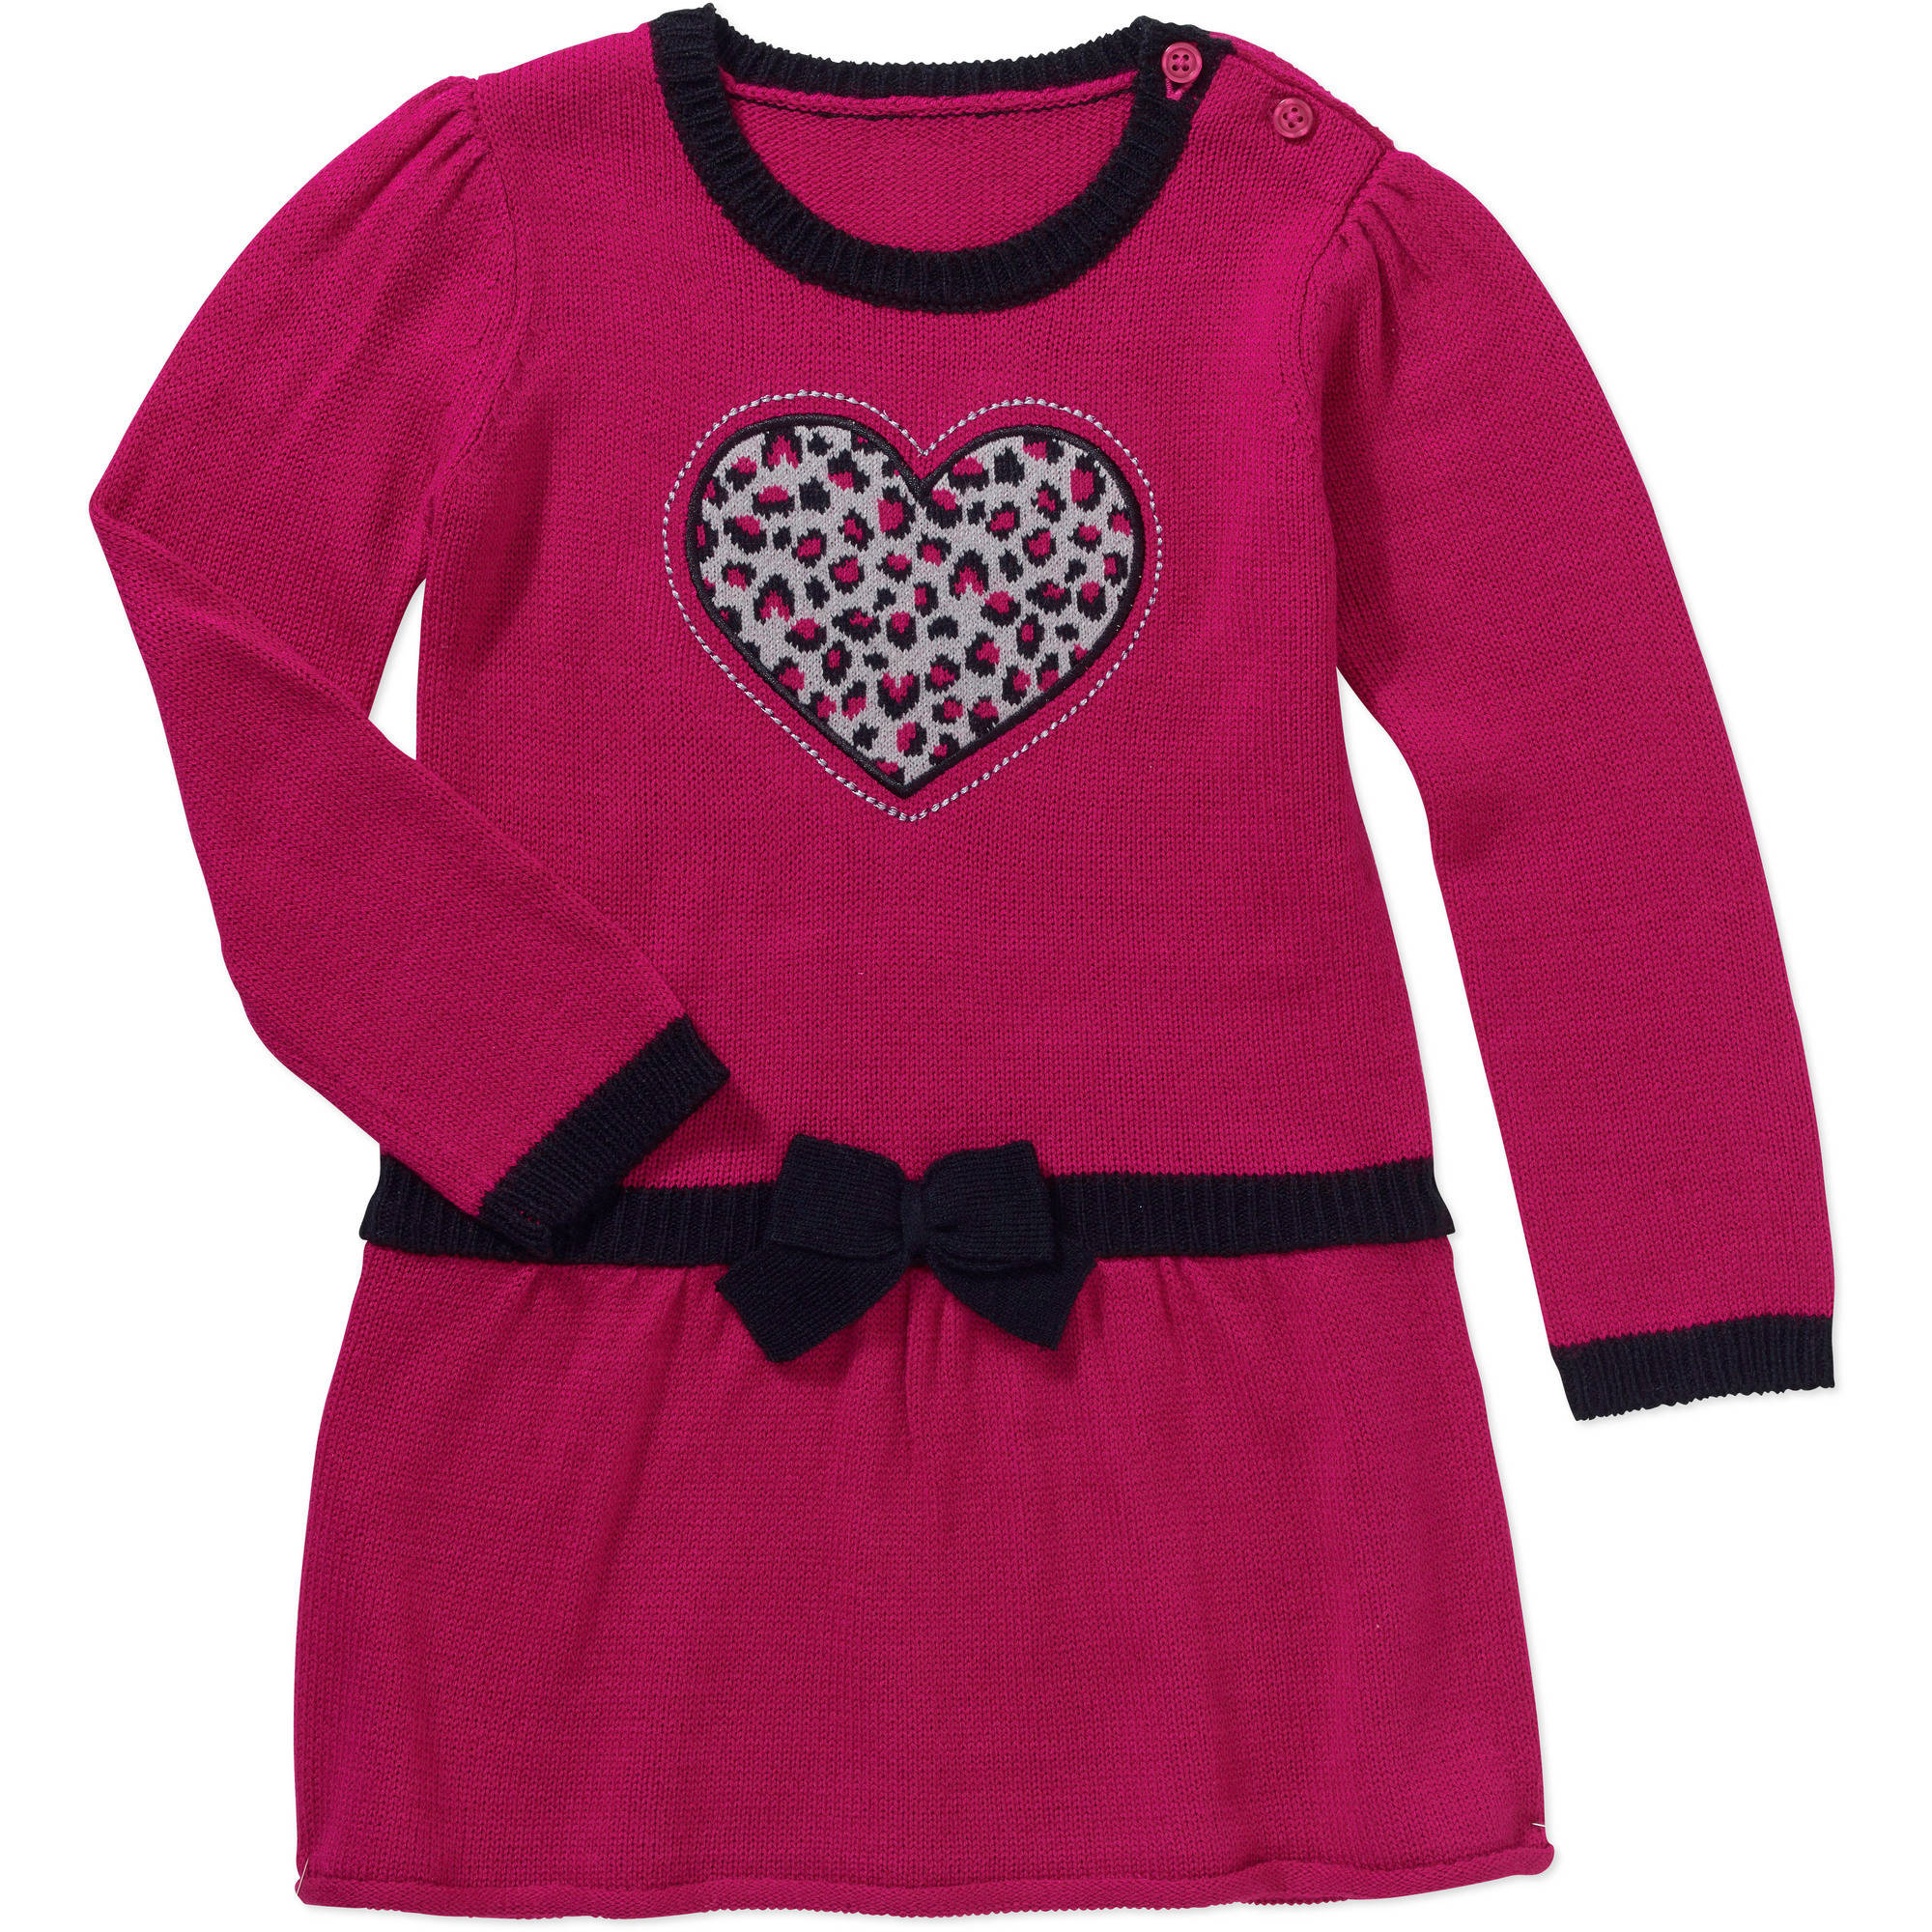 Healthtex Baby Toddler Girl Drop Waist Sweater Dress